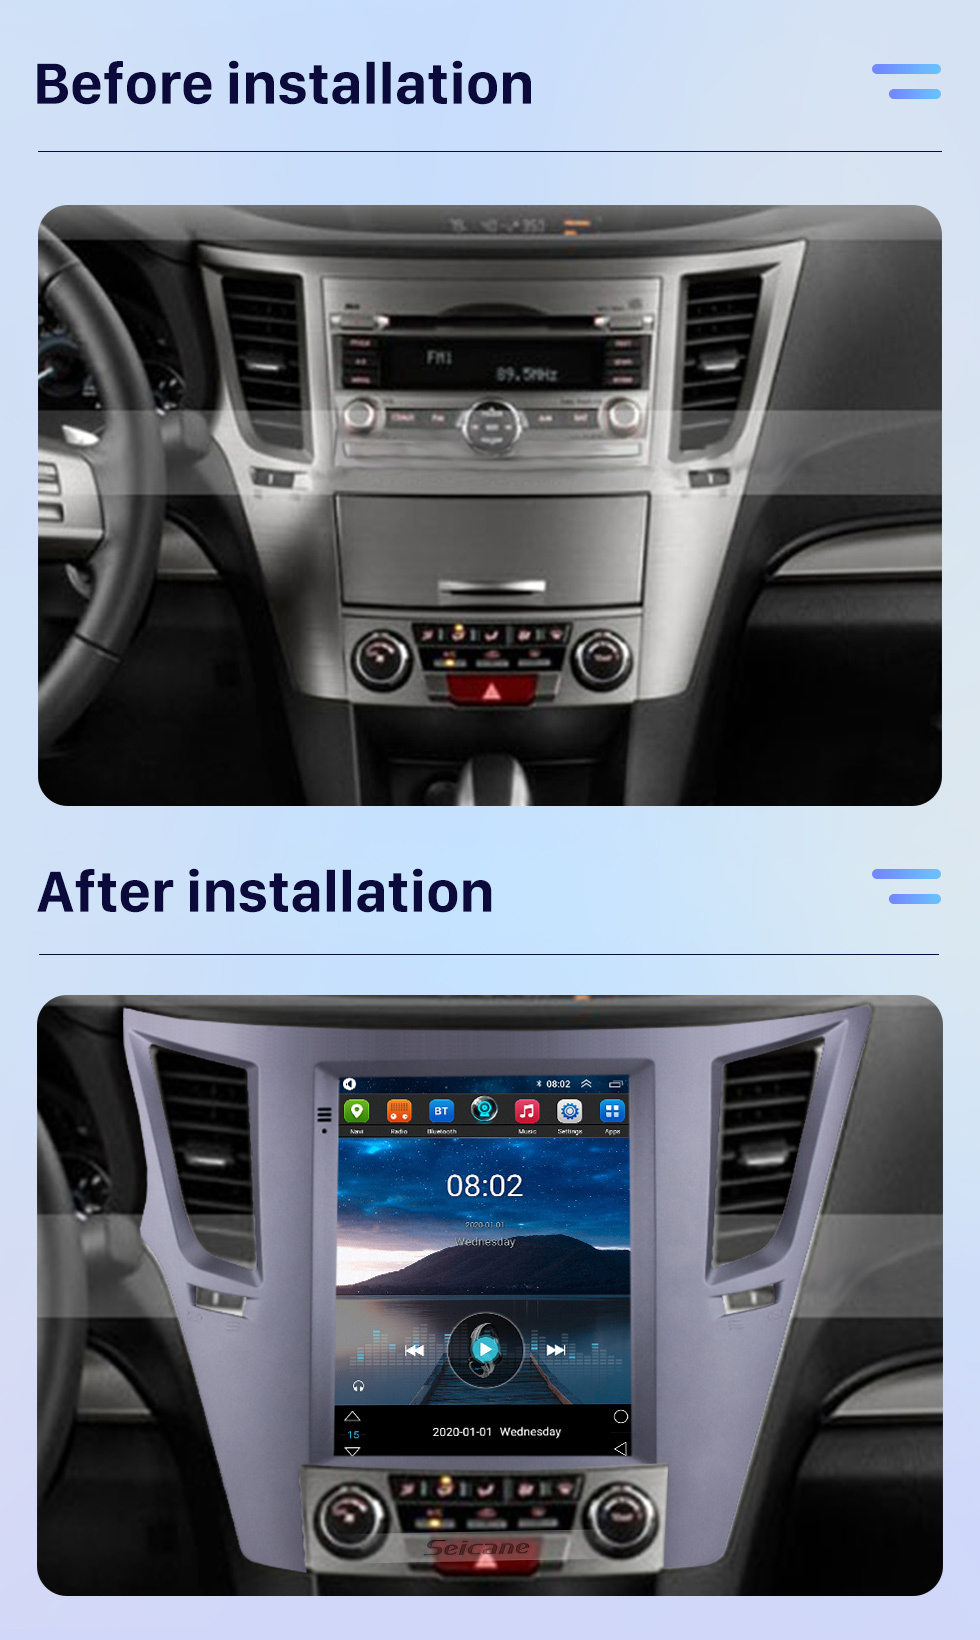 Seicane Aftermarket 9.7 inch Android 10.0 Radio for Subaru Outback 2010-2014 GPS Navigation HD Touchscreen Stereo Bluetooth USB MP4 music Mirror Link SWC 4G WIFI